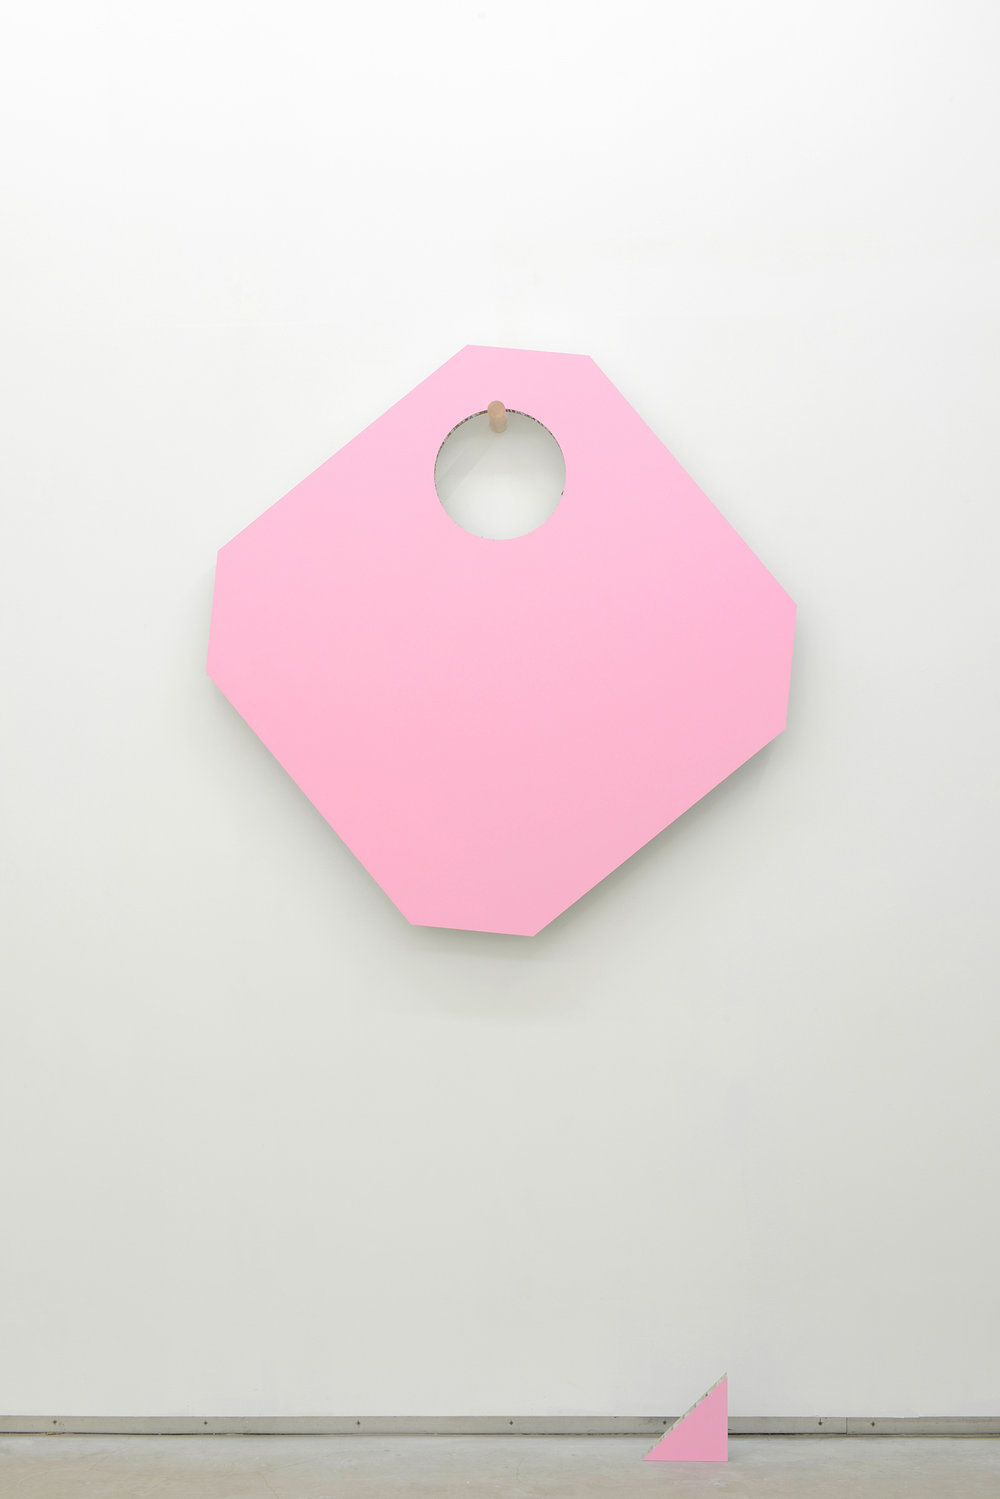 Jean-Pascal Flavien, statement house - Rose! There will be so much room , 2014,painted aluminium, painted cardboard, wood, 113 x 113 cm